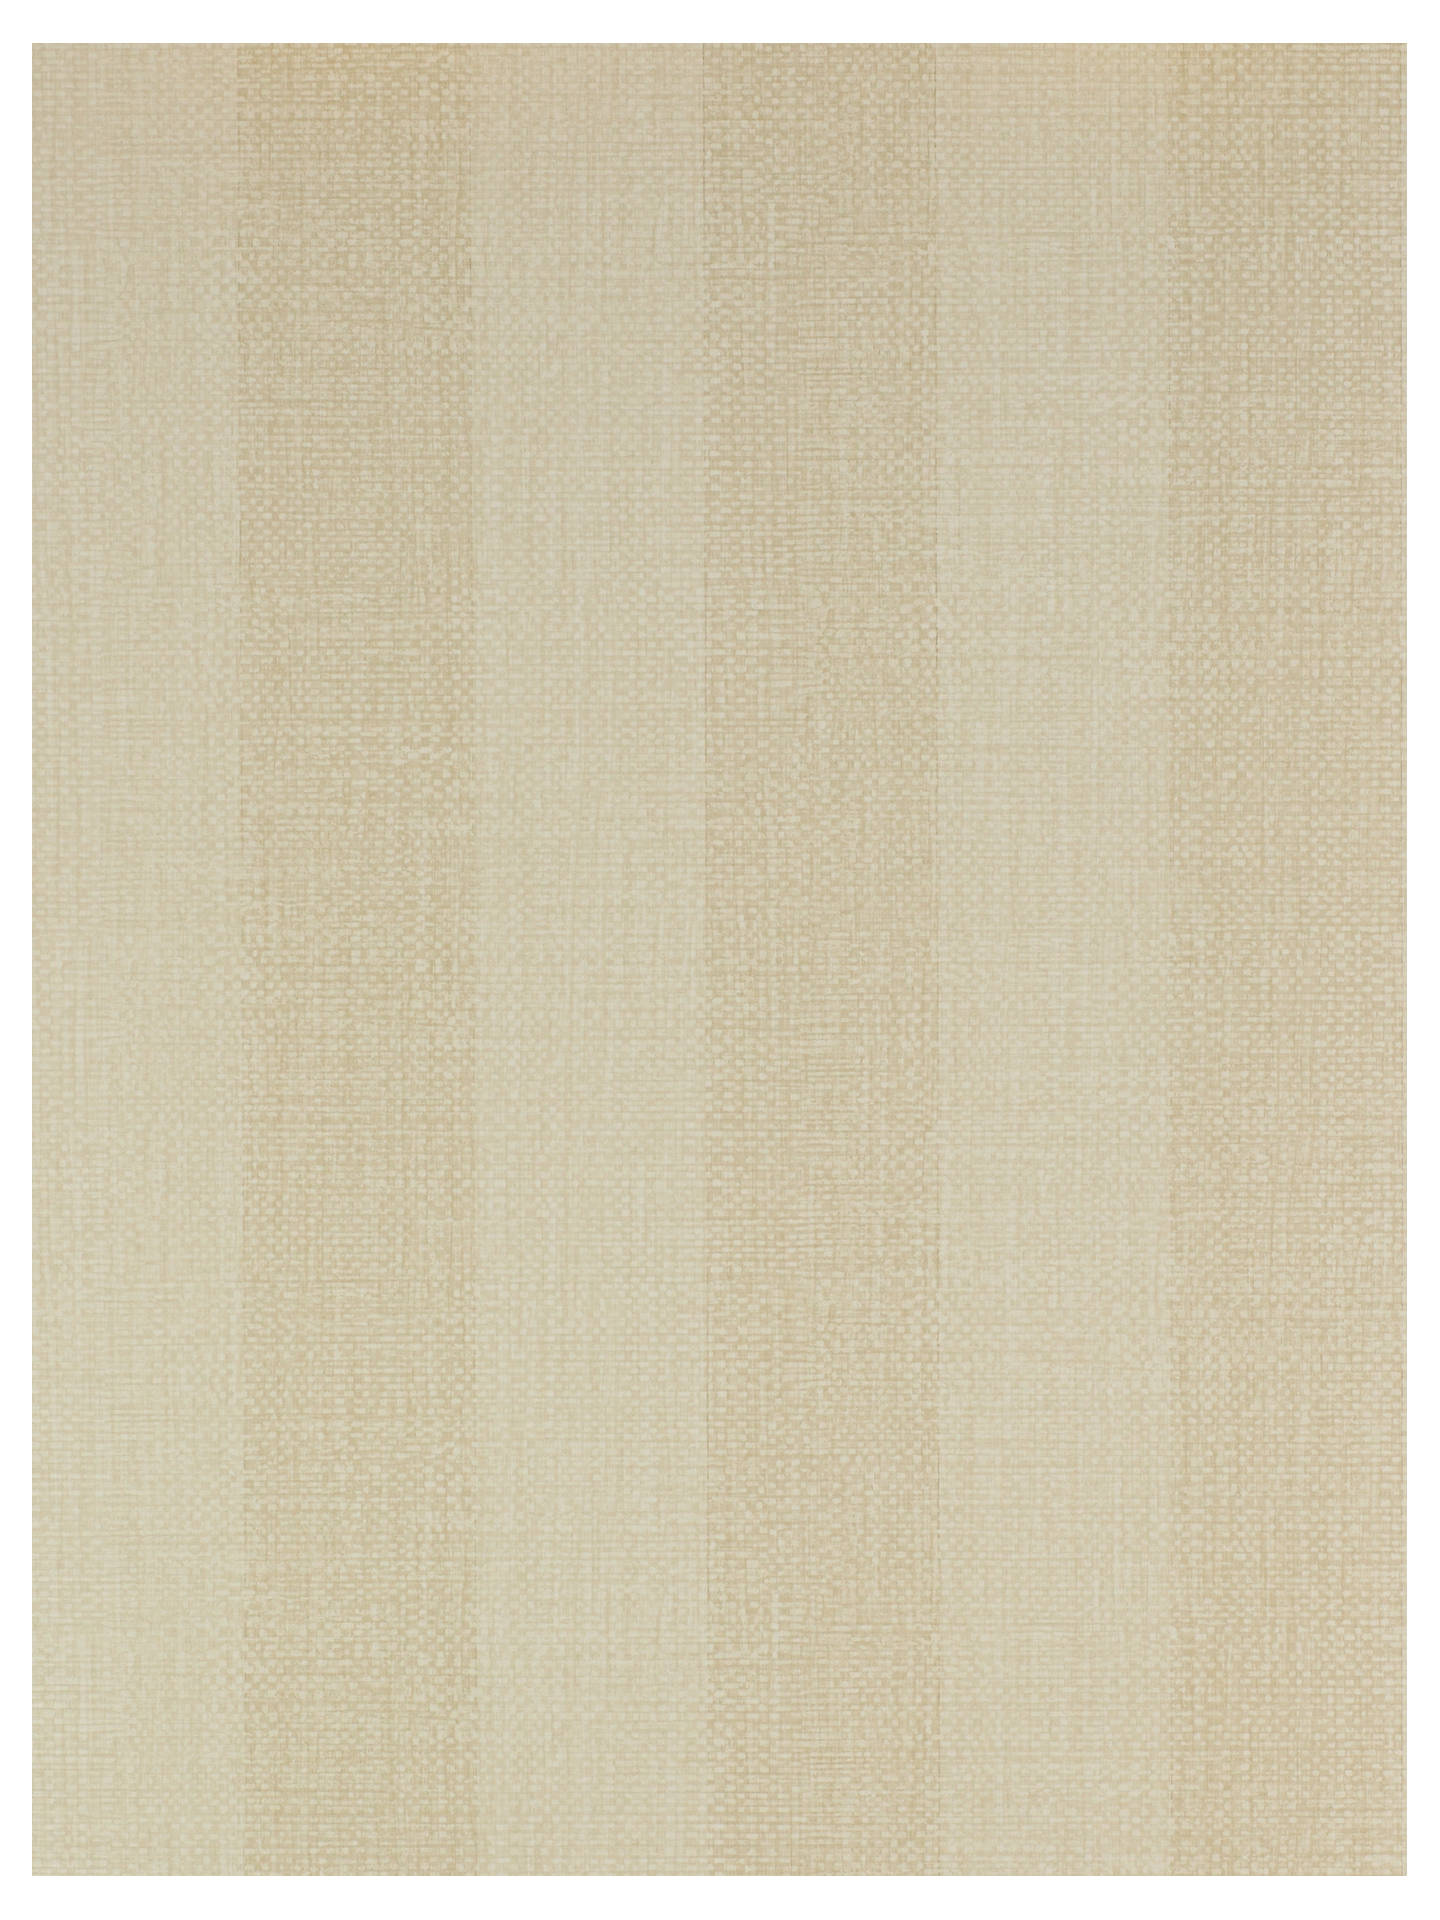 BuyColefax & Fowler Halkin Stripe Wallpaper, 07152/01 Online at johnlewis.com